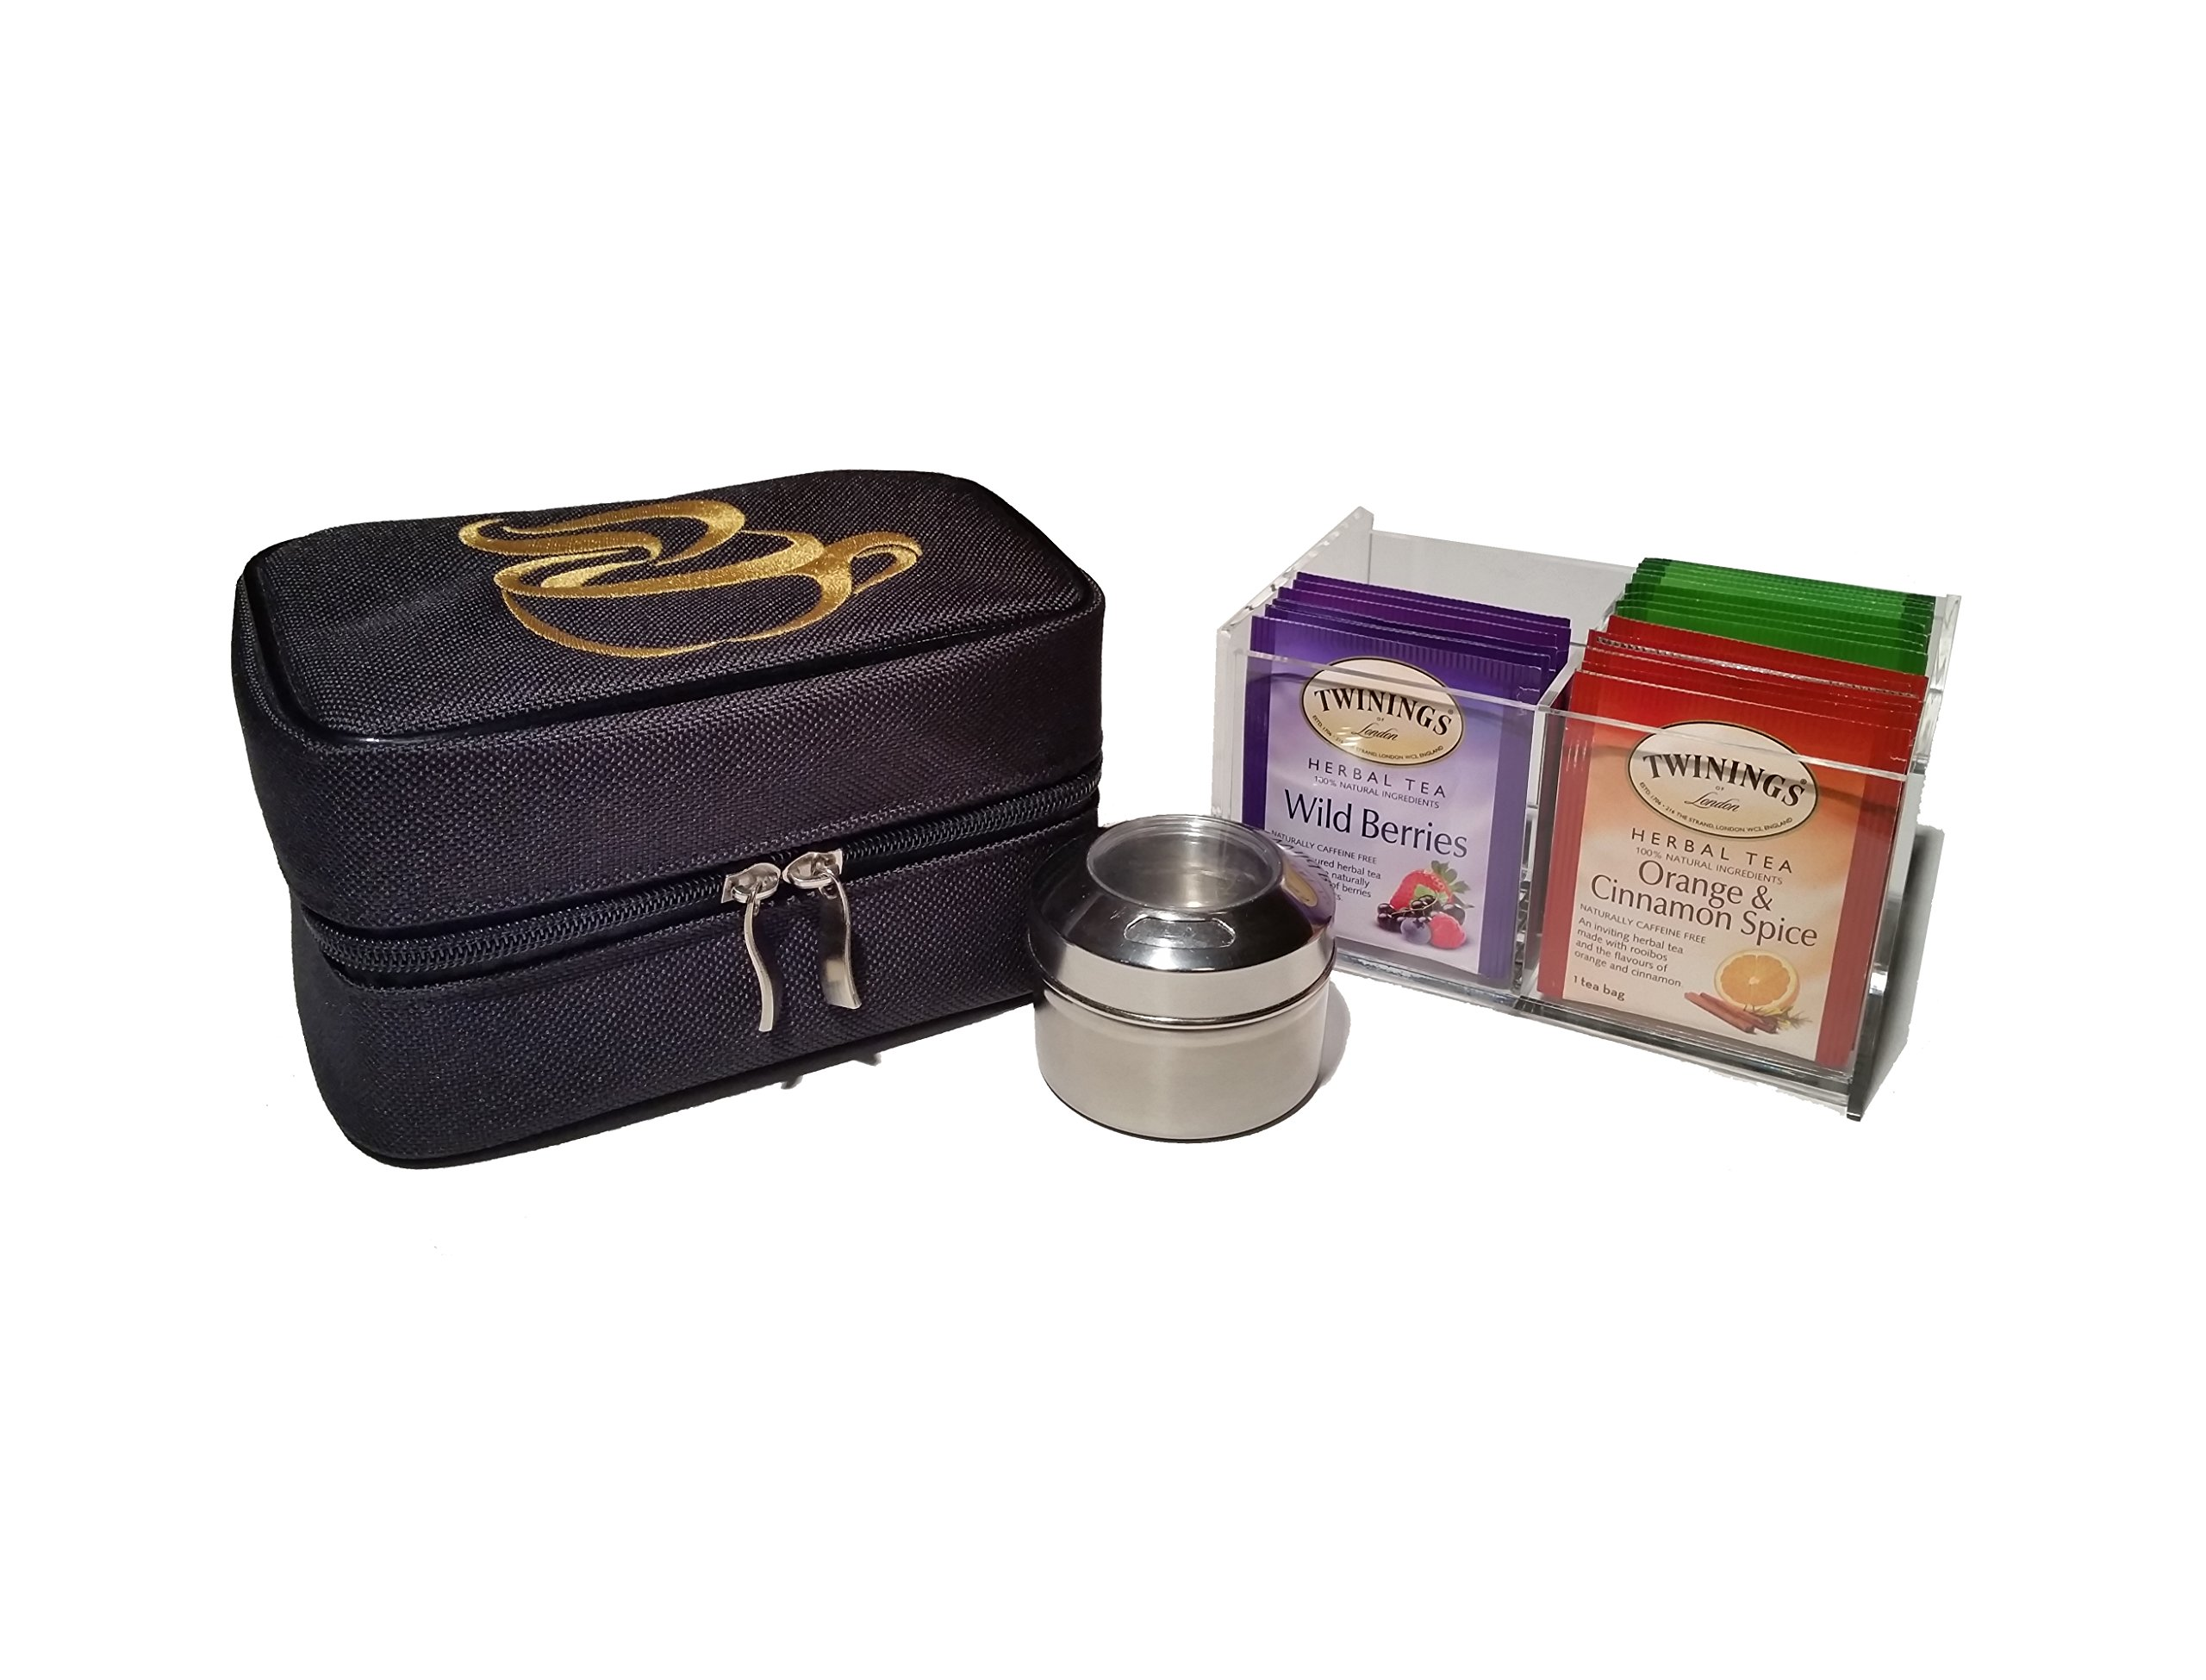 Teacaso Travel Tea Chest Organizer w/ Tea Bags and Spice Jar - Great for Home, Office, & Travel!